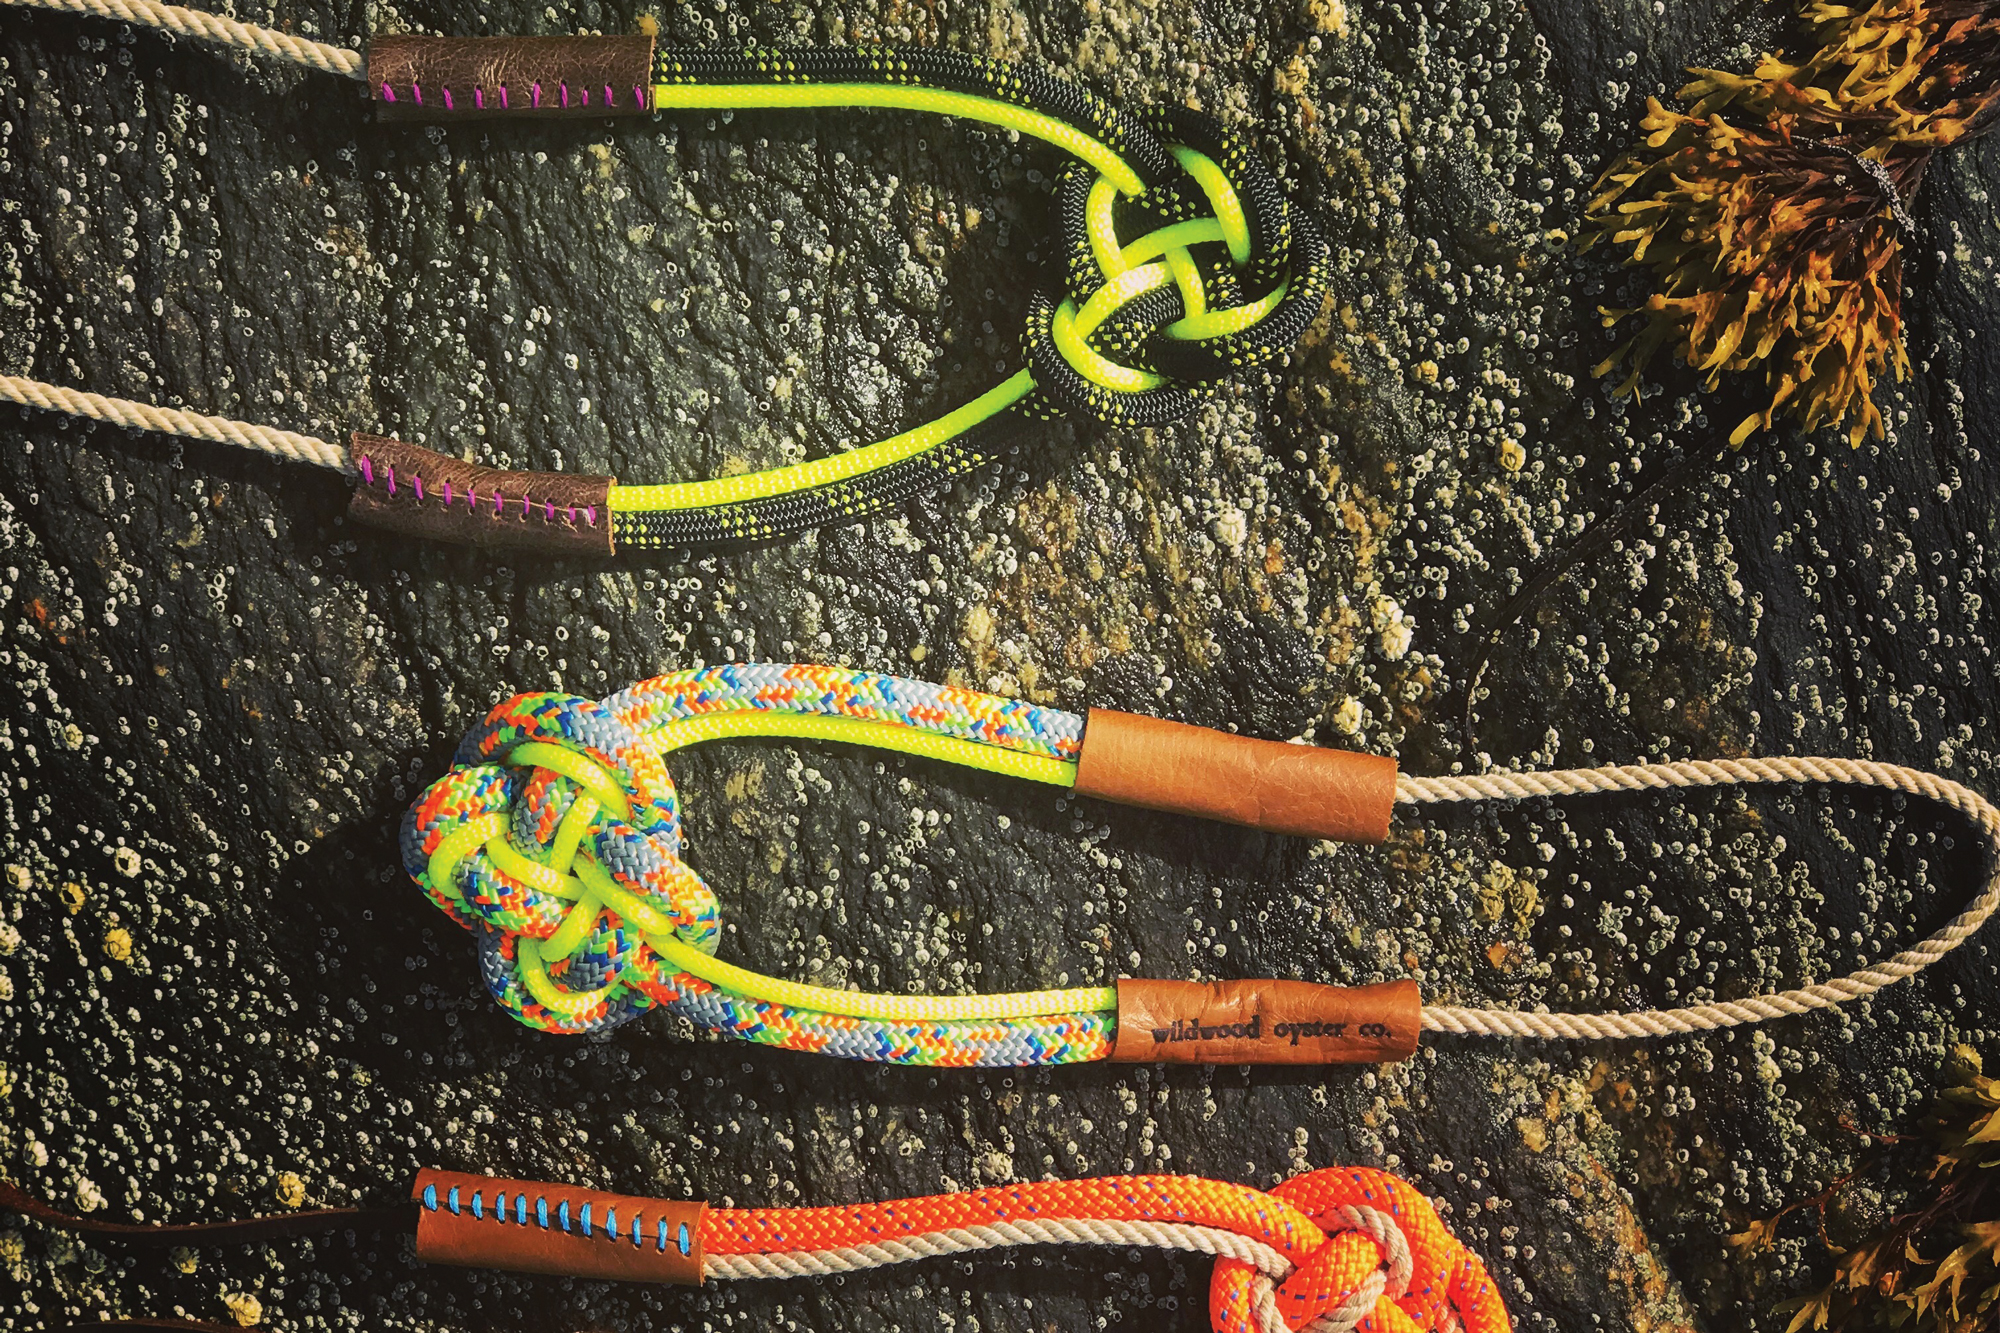 Wildwood Oyster Co.'s necklaces